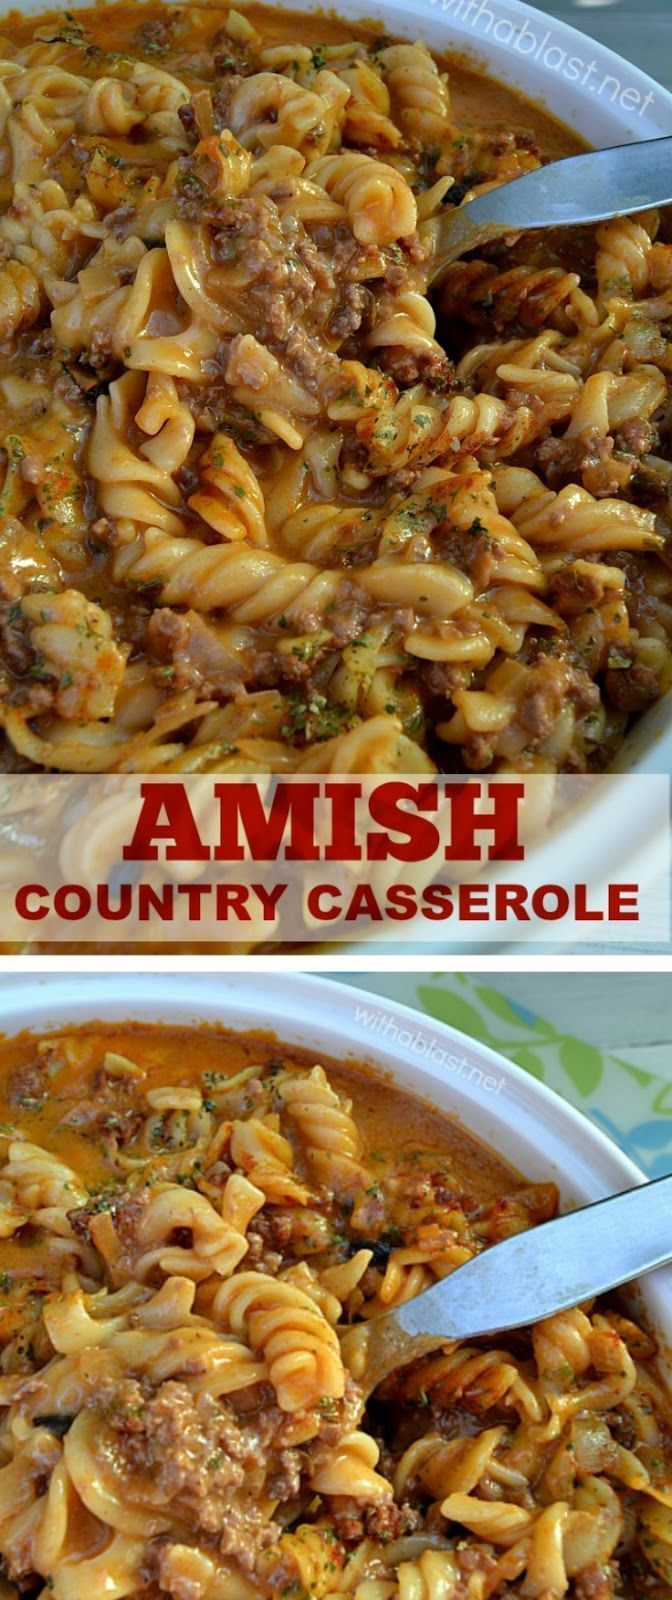 cool Amish Country CasserolebyDiMagio